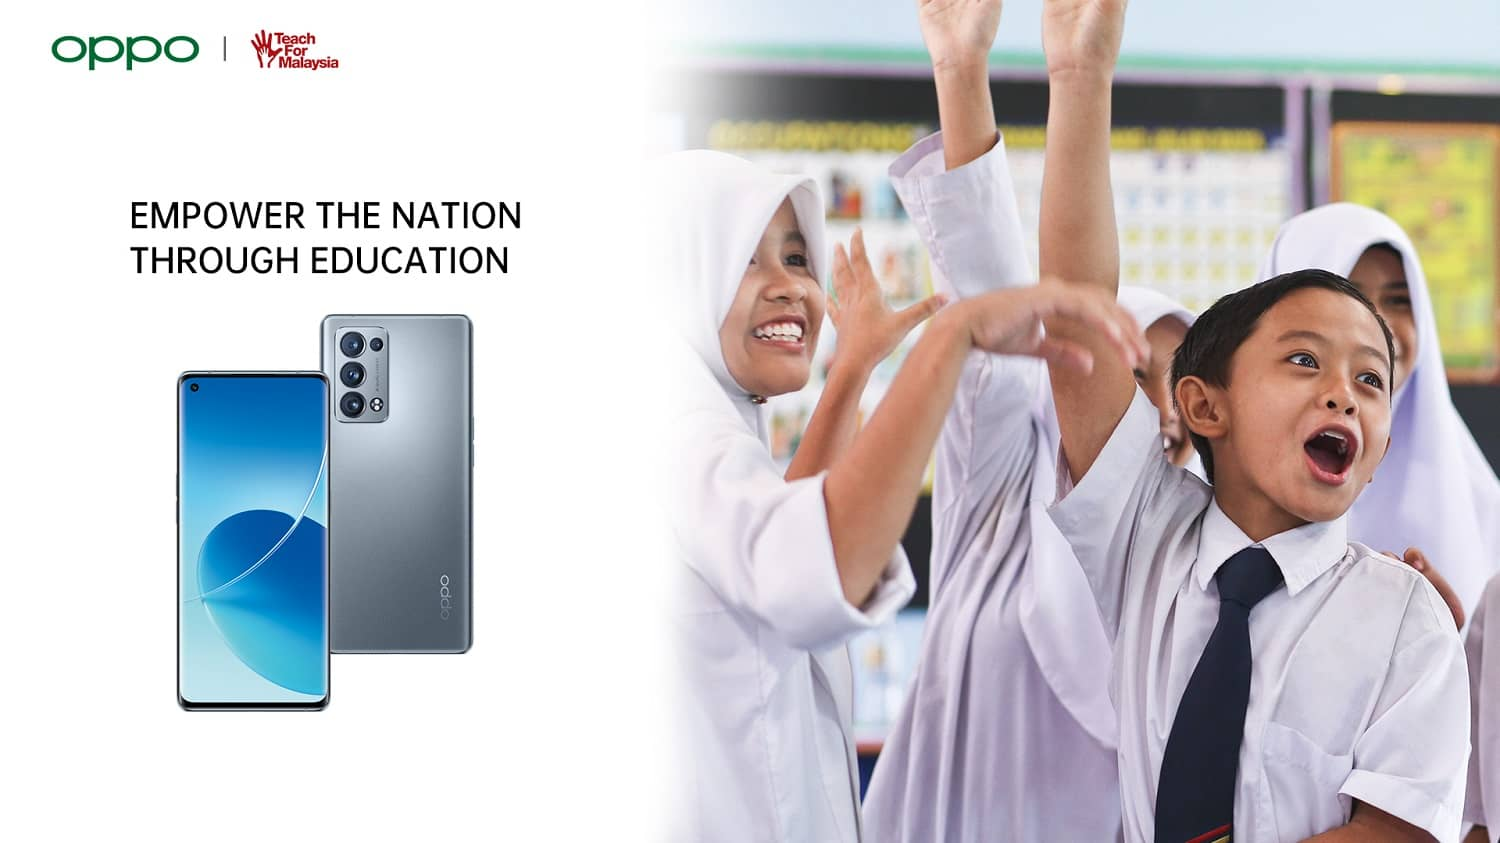 OPPO Partners with Teach For Malaysia to Support the Future of the Nation